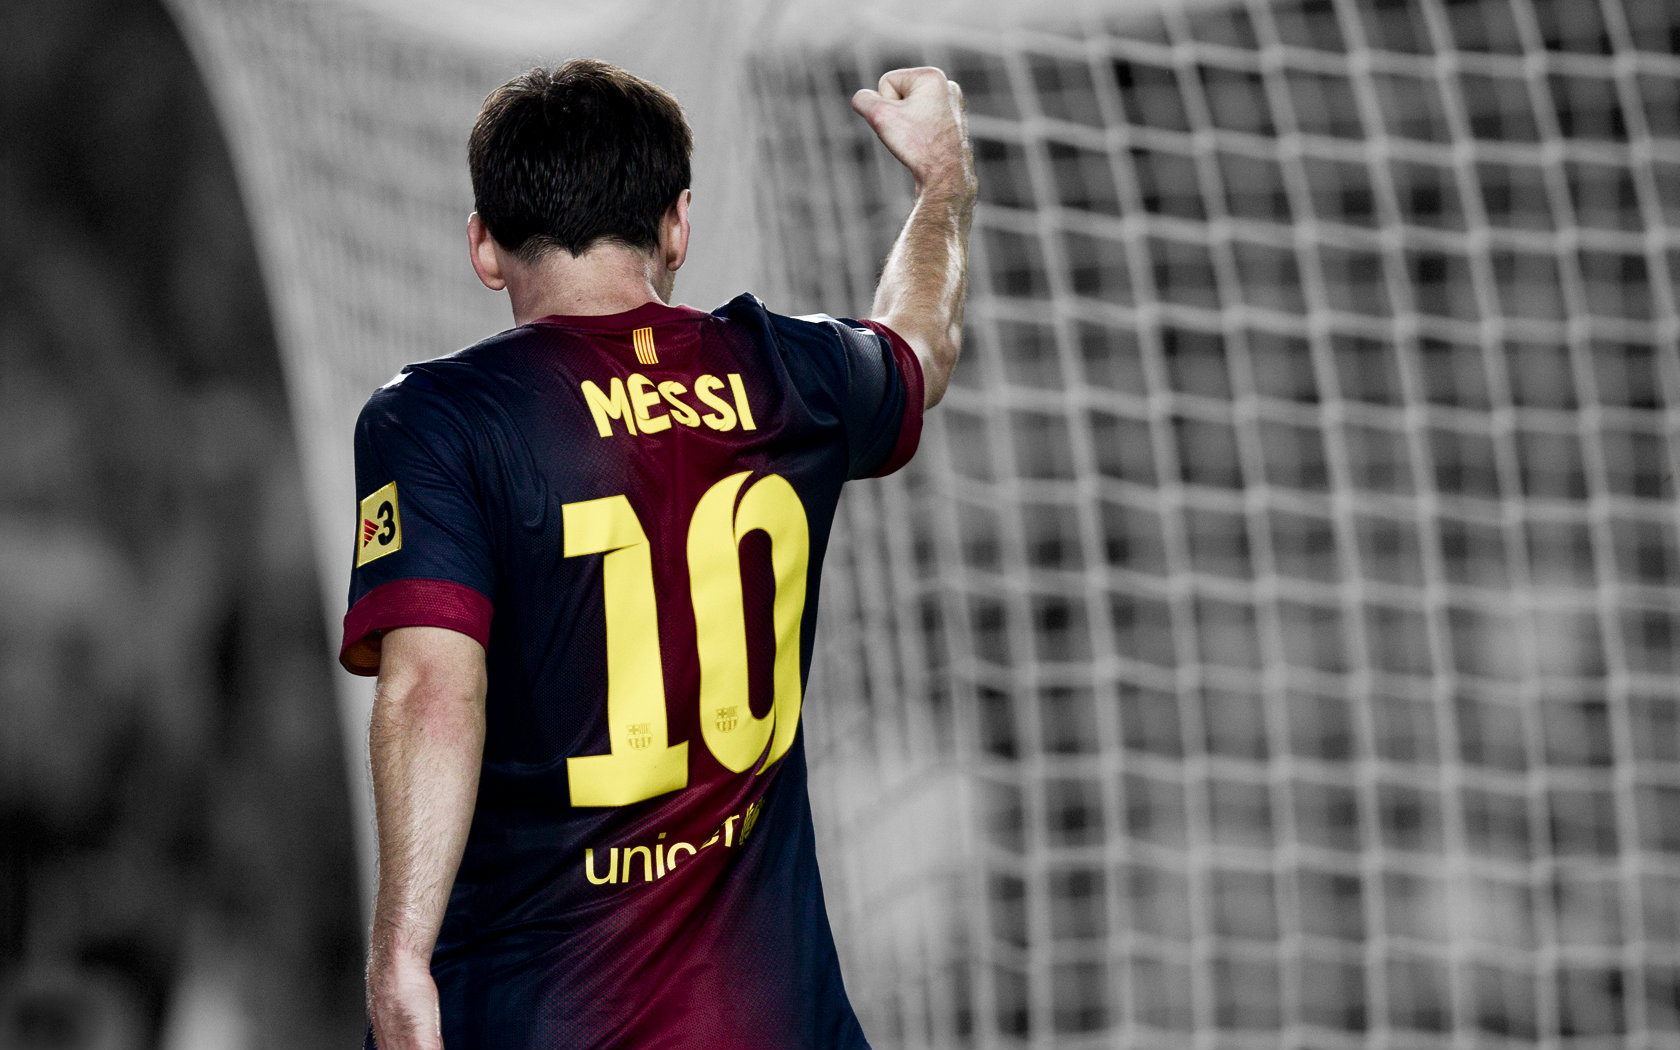 Lionel Messi HD Desktop Wallpapers Most HD Wallpapers Pictures 1680x1050